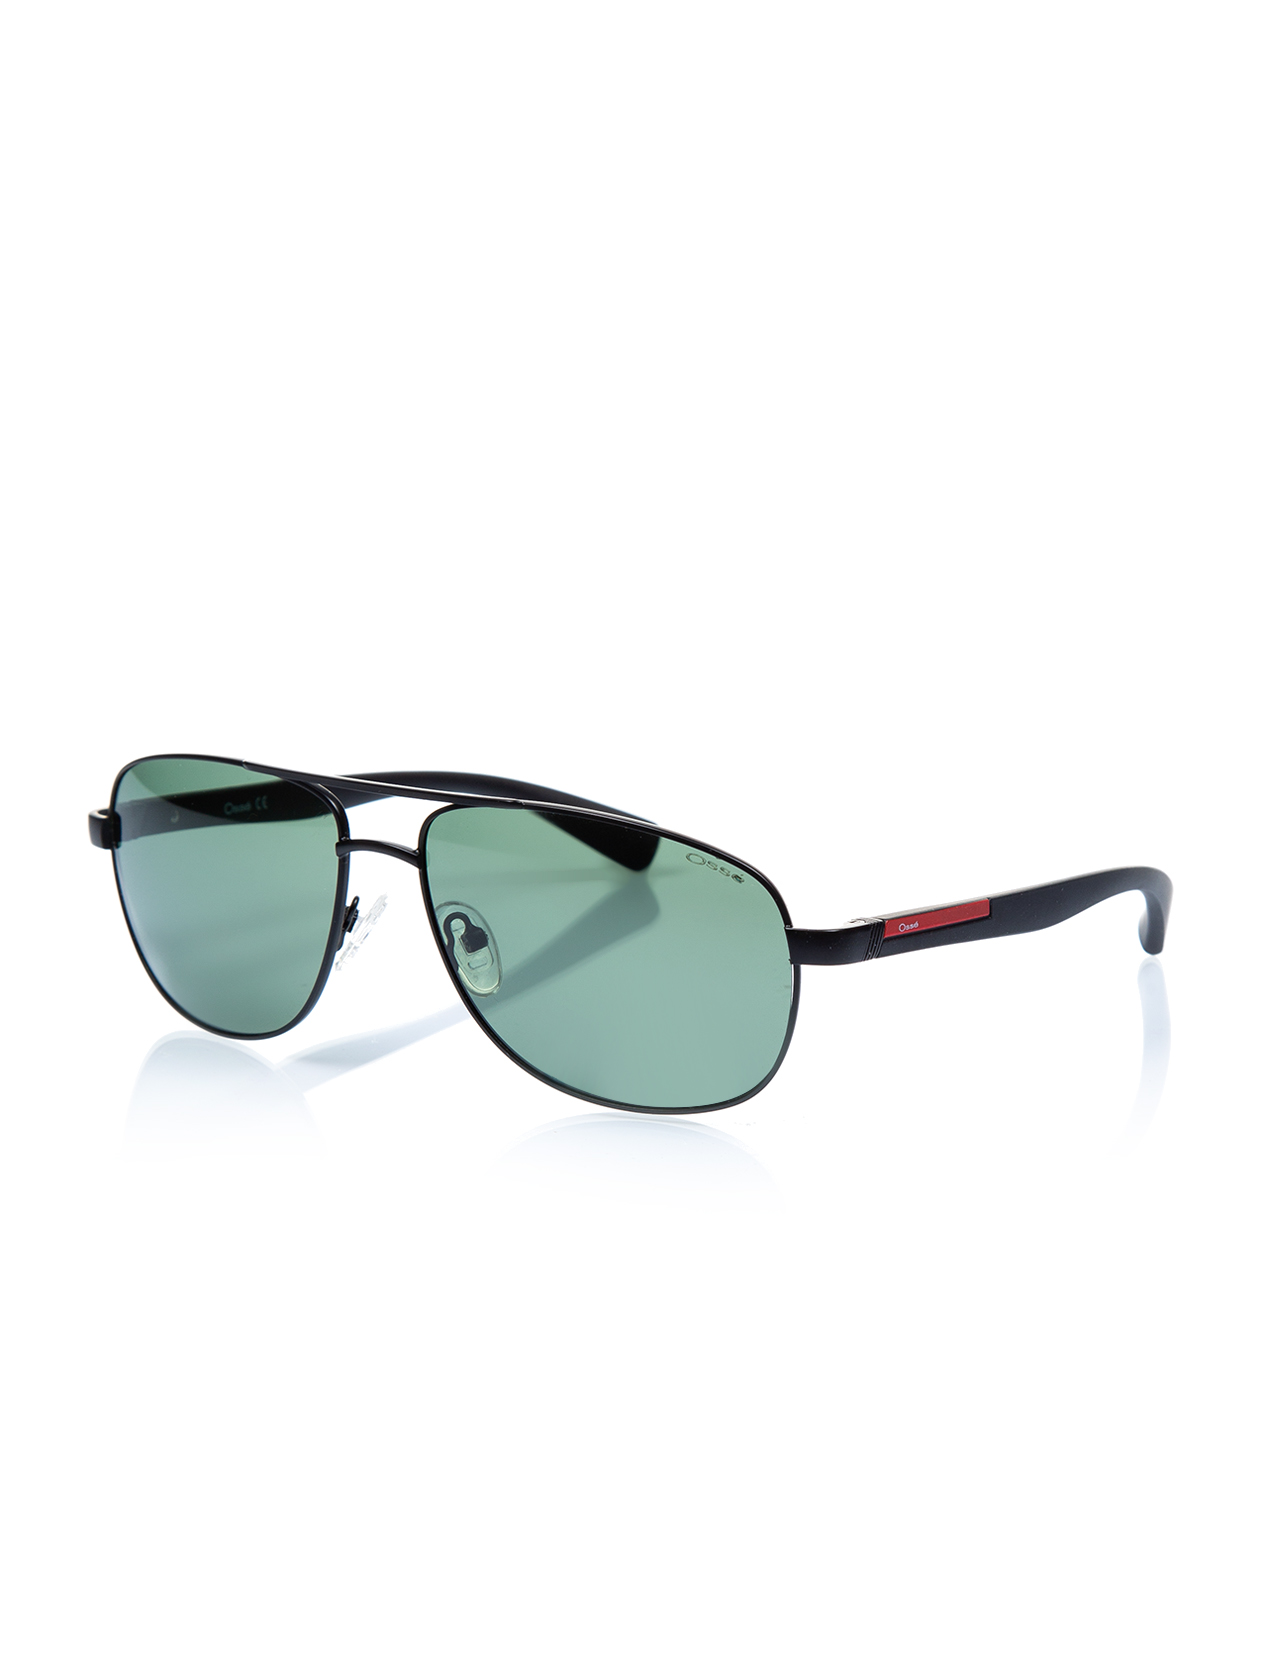 Men's sunglasses os 2466 03 metal black organic square square 59-14-128 osse